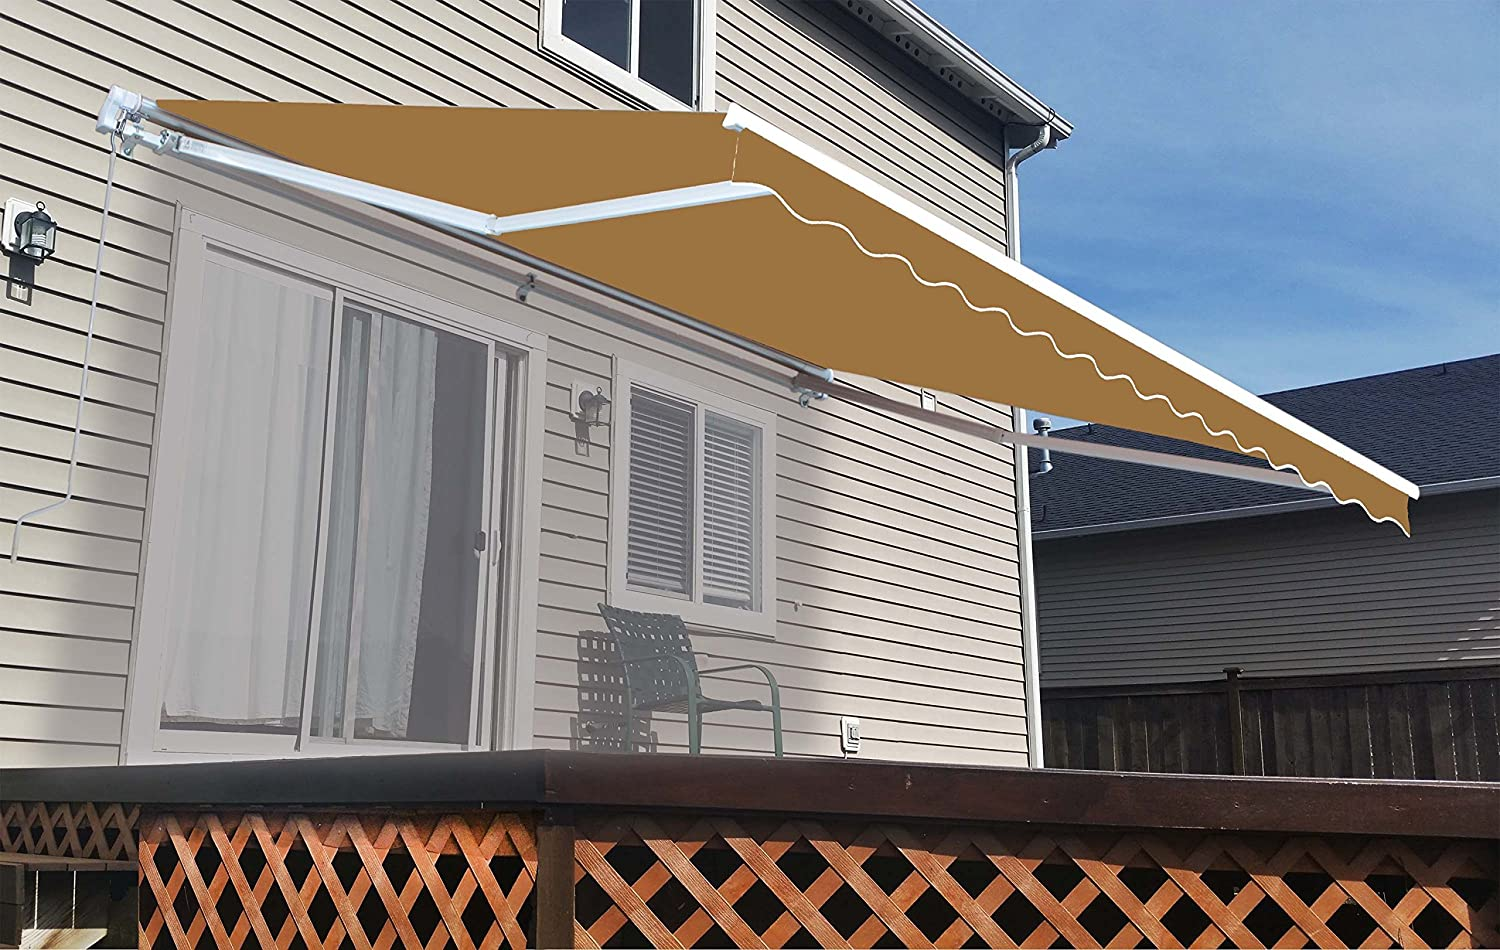 Amazon.com : ALEKO 12x10 Feet Retractable Home Patio Awning, Sand : Patio,  Lawn U0026 Garden